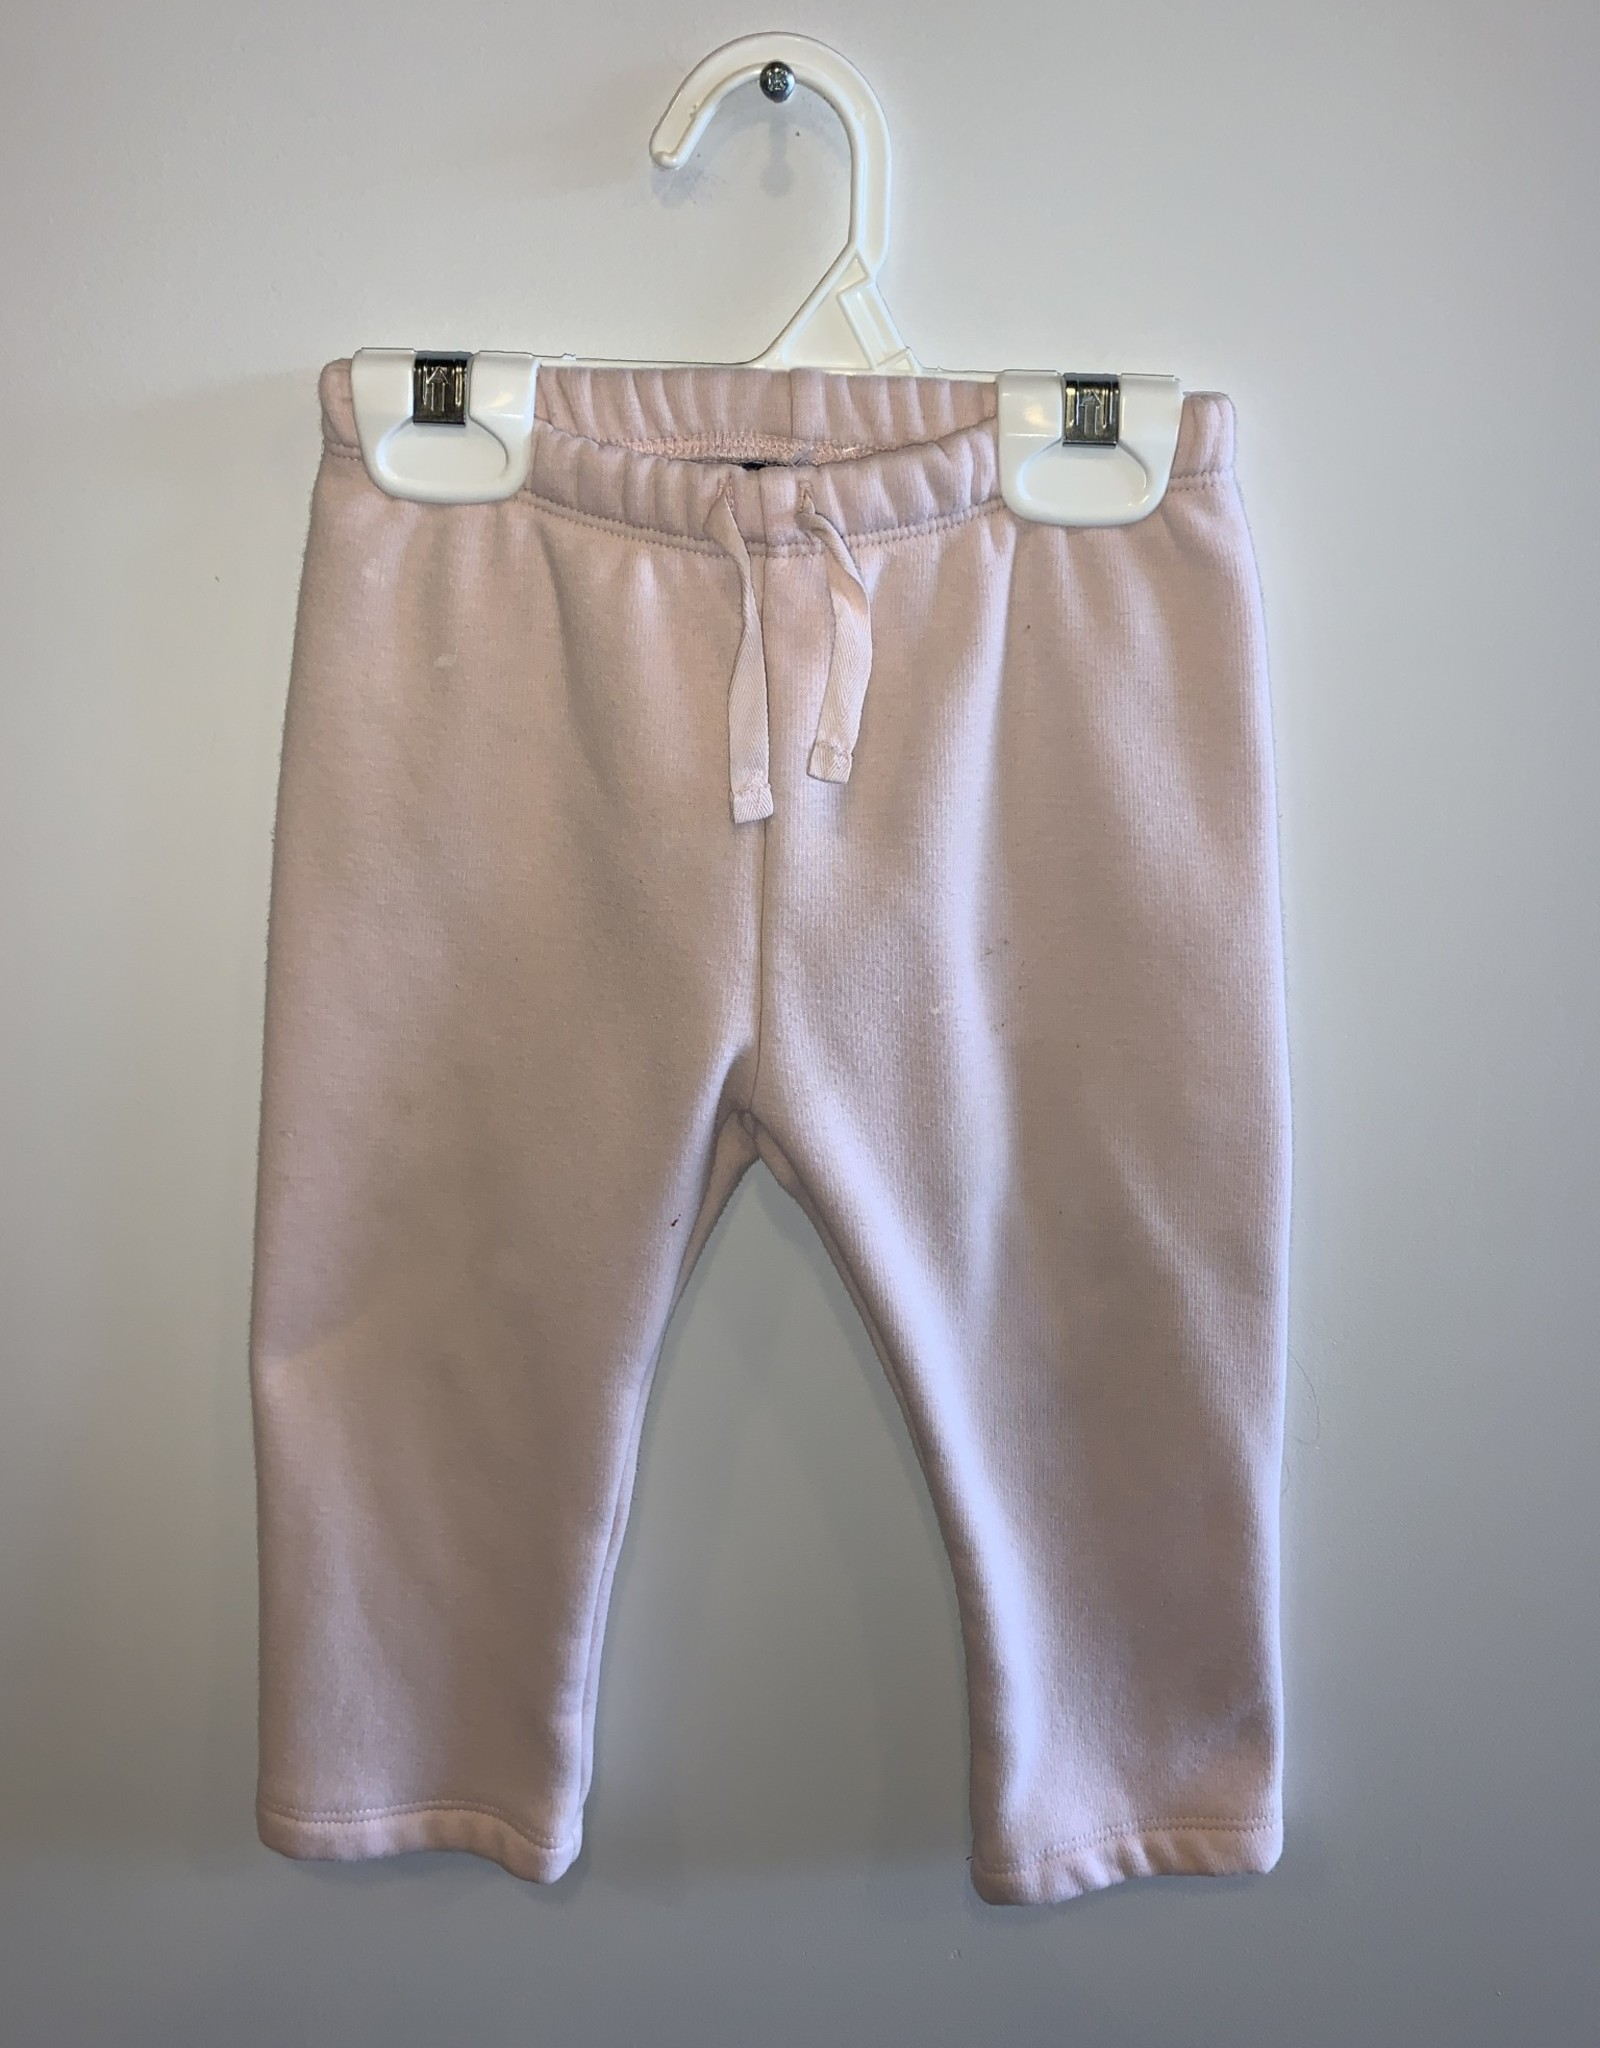 Gap Girls/12-18/Gap/Pants (AS IS)